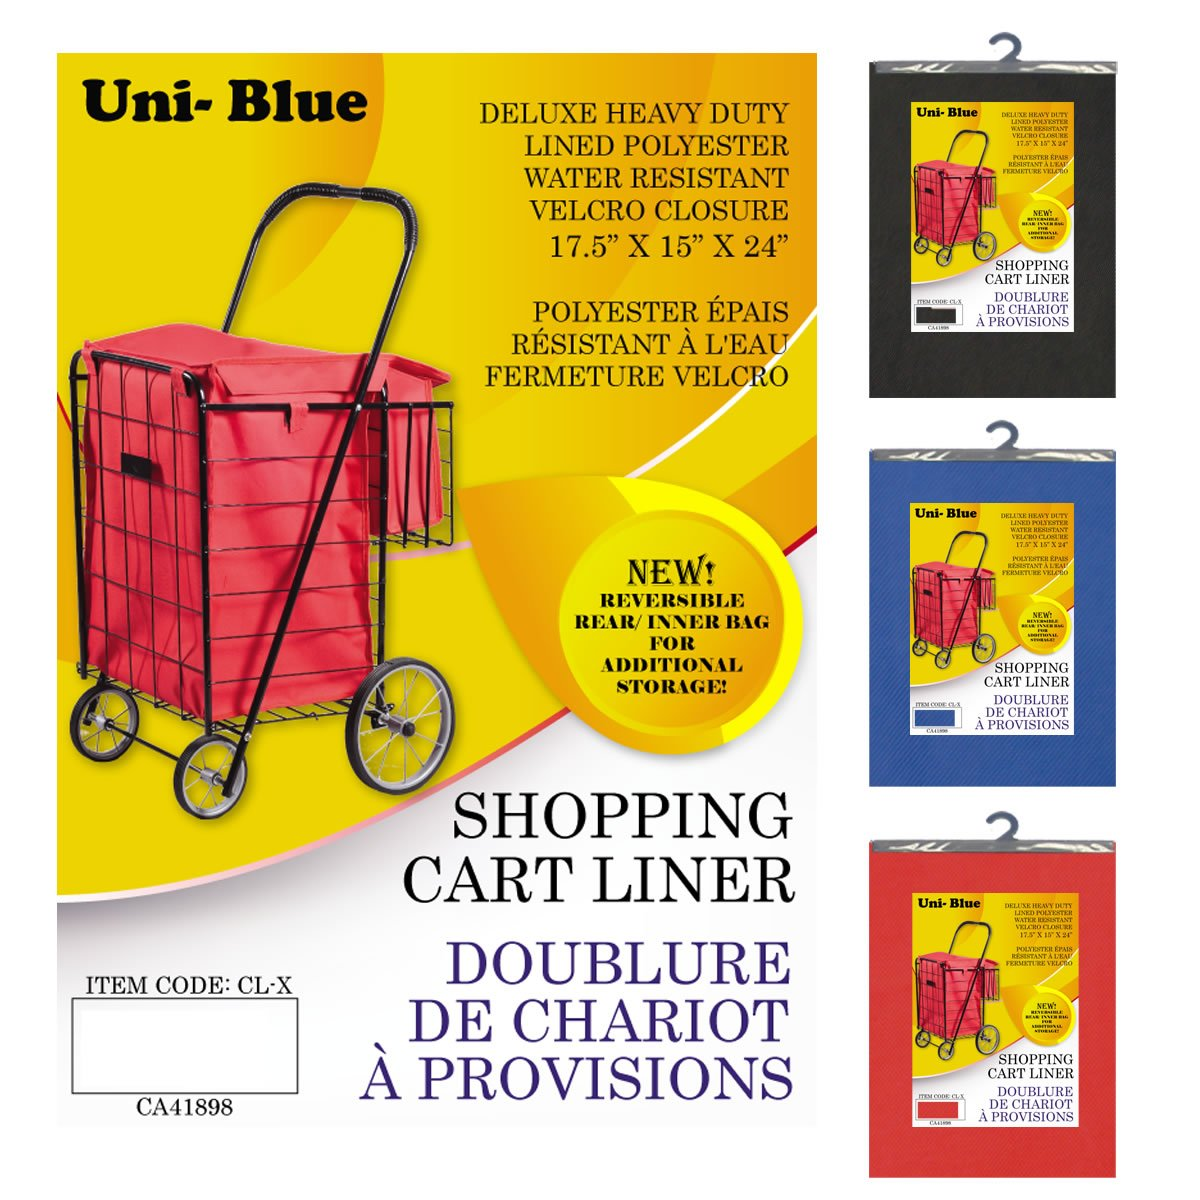 Uni-Blue CLX Heavy Duty Lined Polyester Shopping Cart Liner UBI Trading Co.